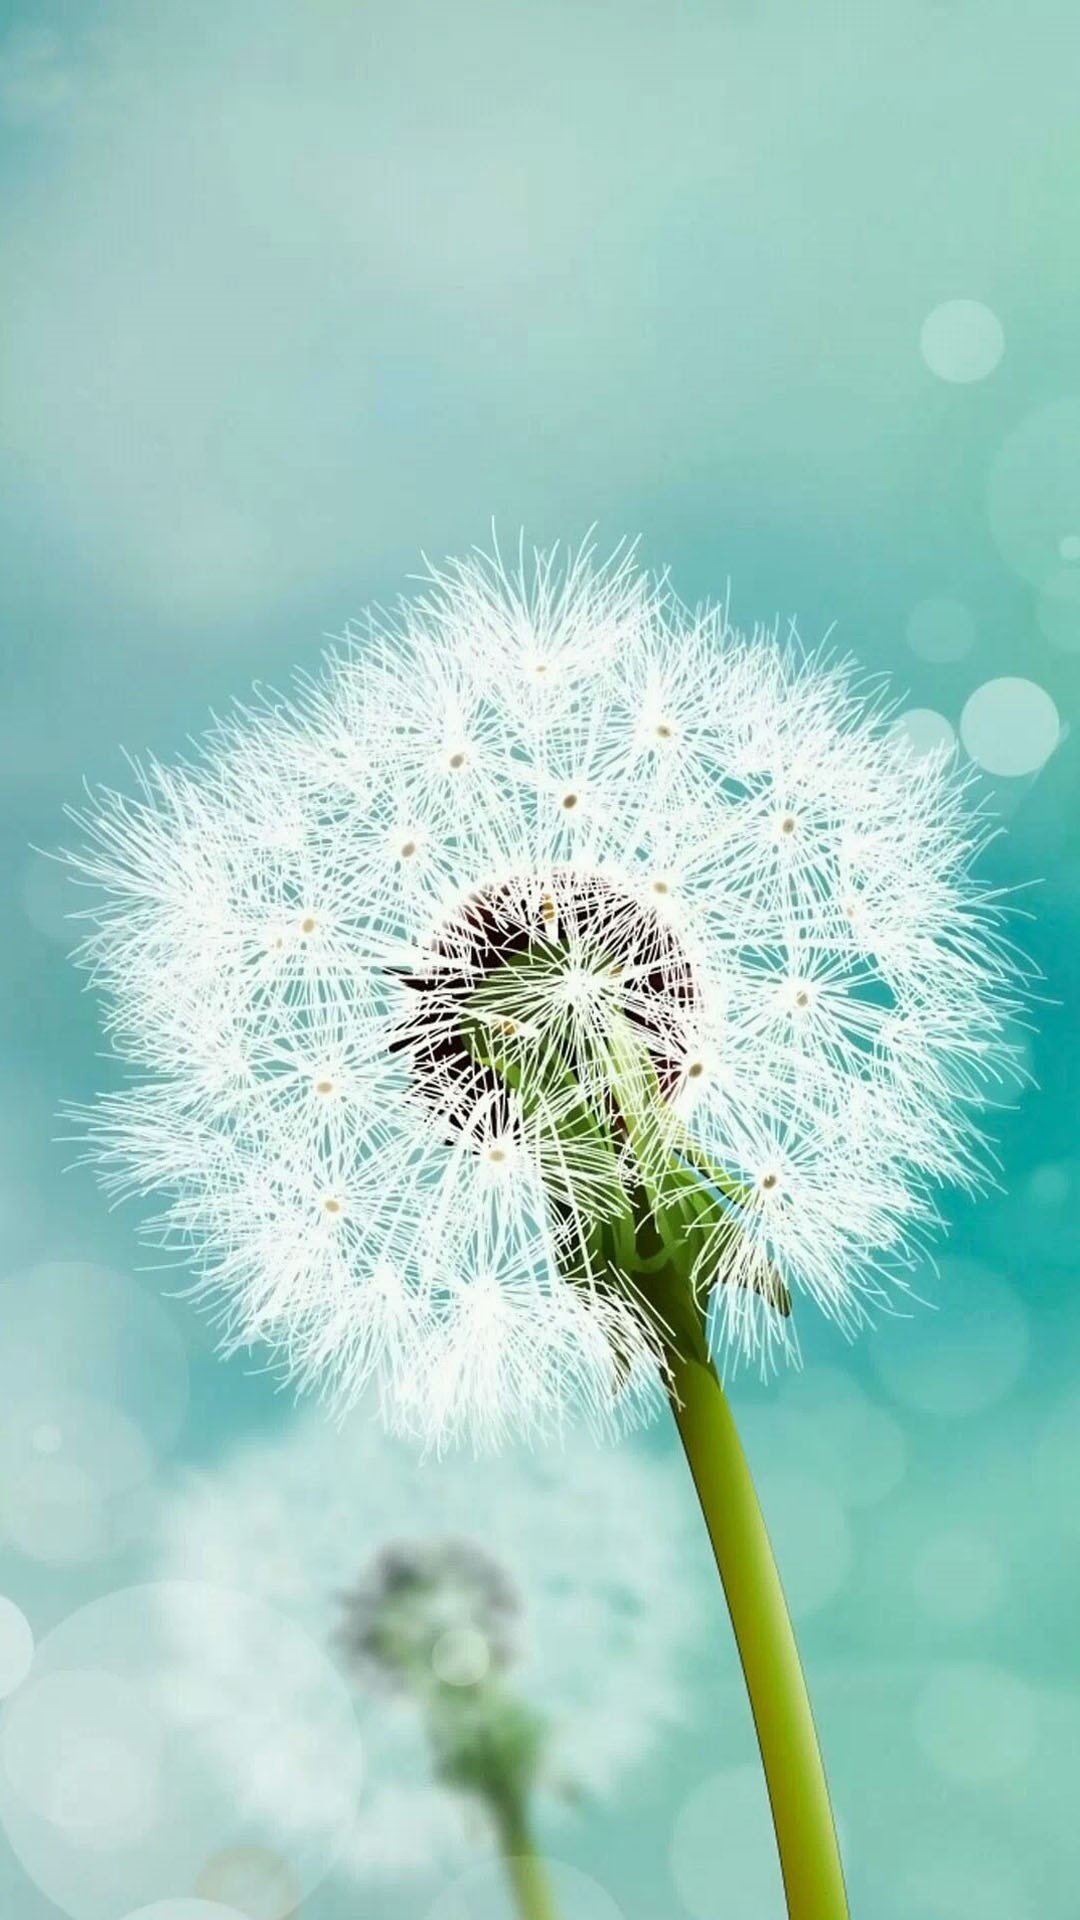 Dandelion flower Samsung HD wallpaper 1080x1920 1080x1920